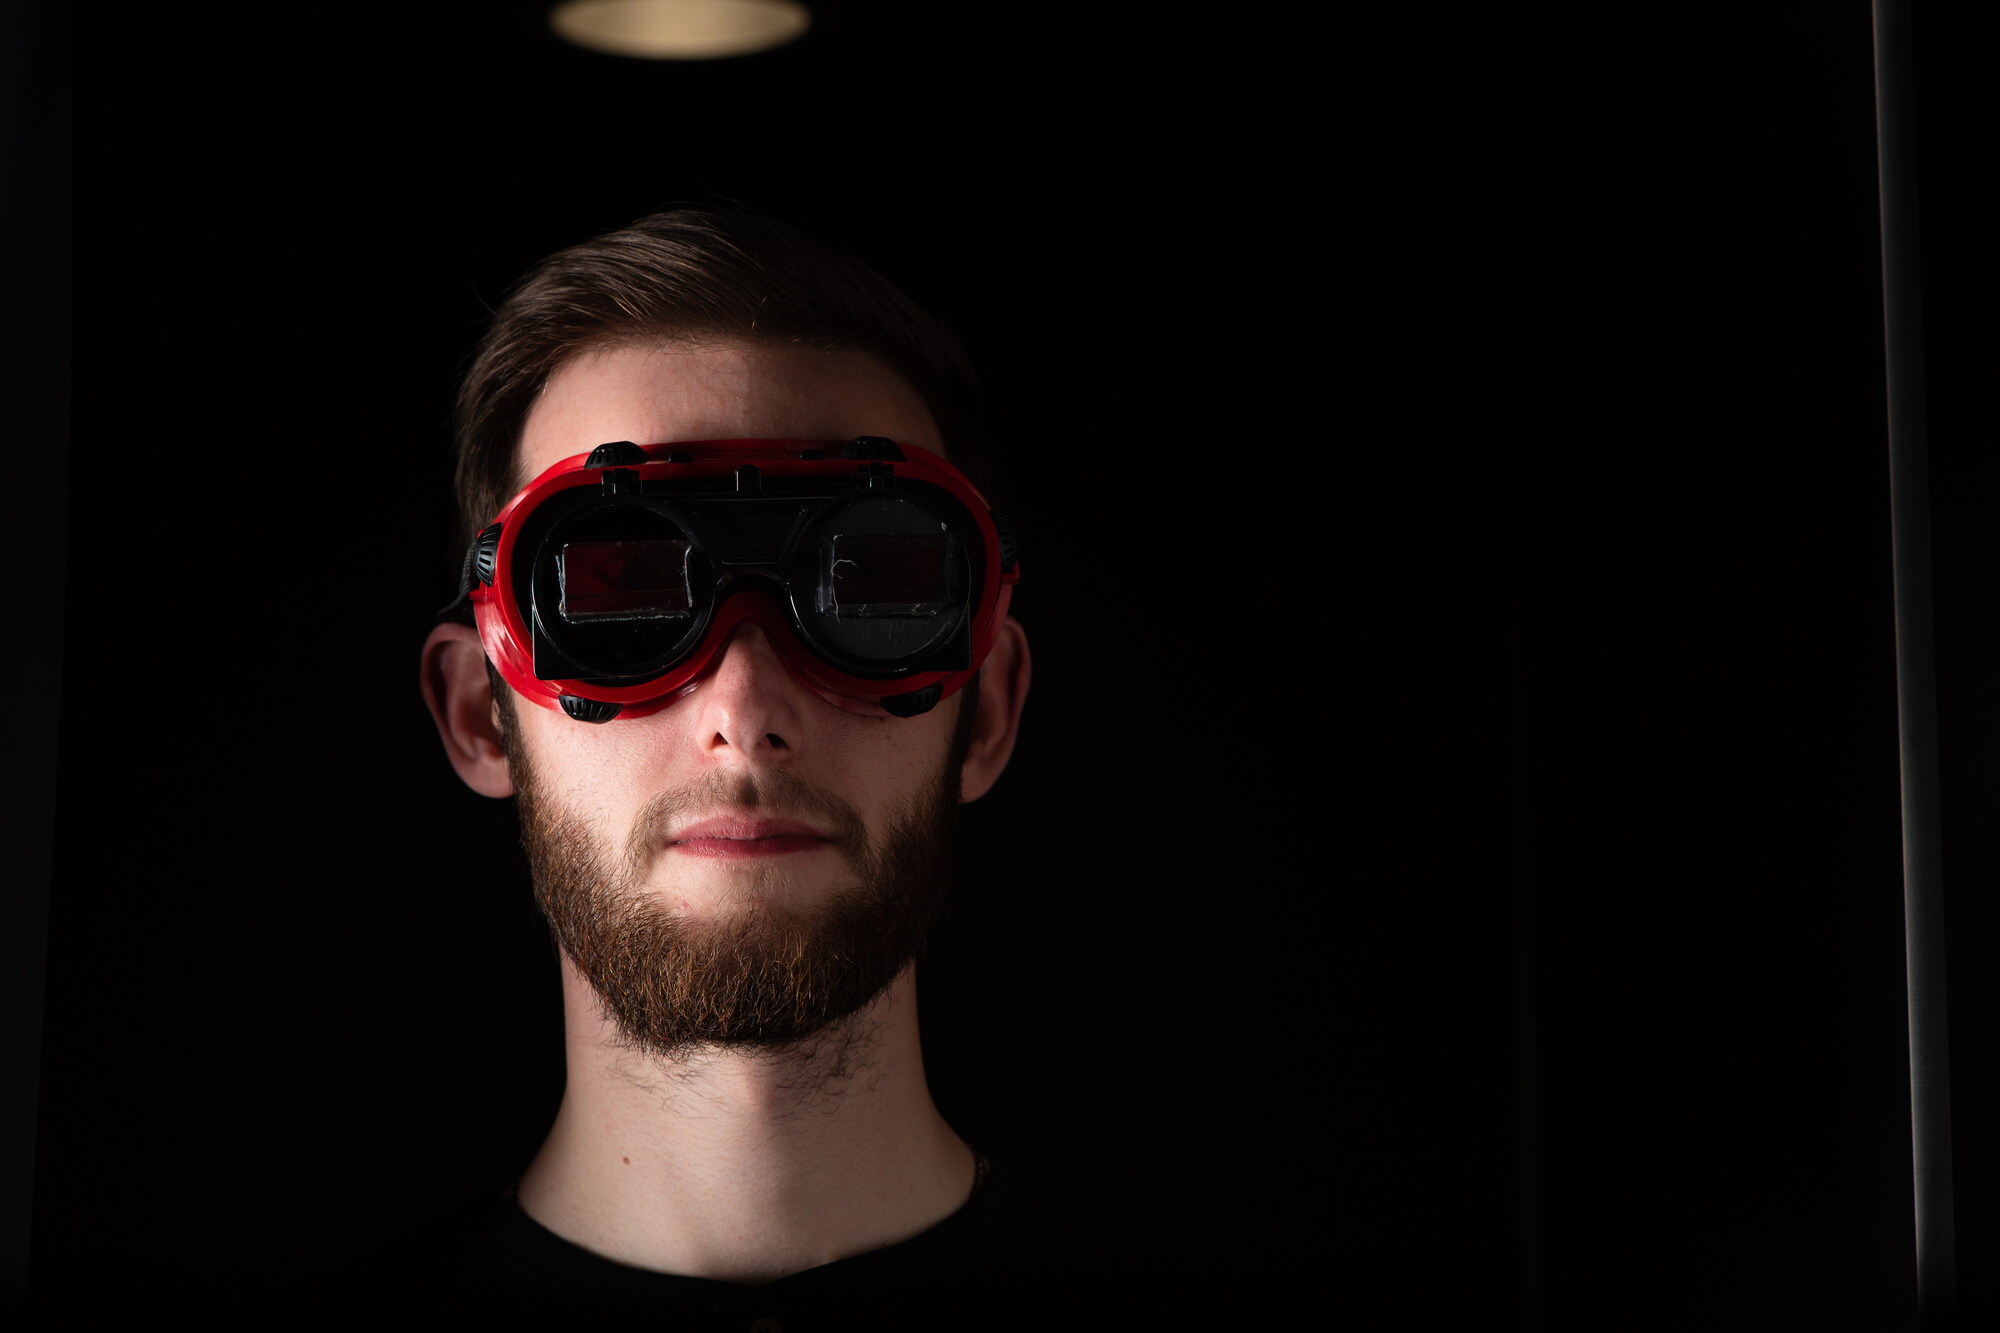 A male student using the eye tracking equipment in a dark room